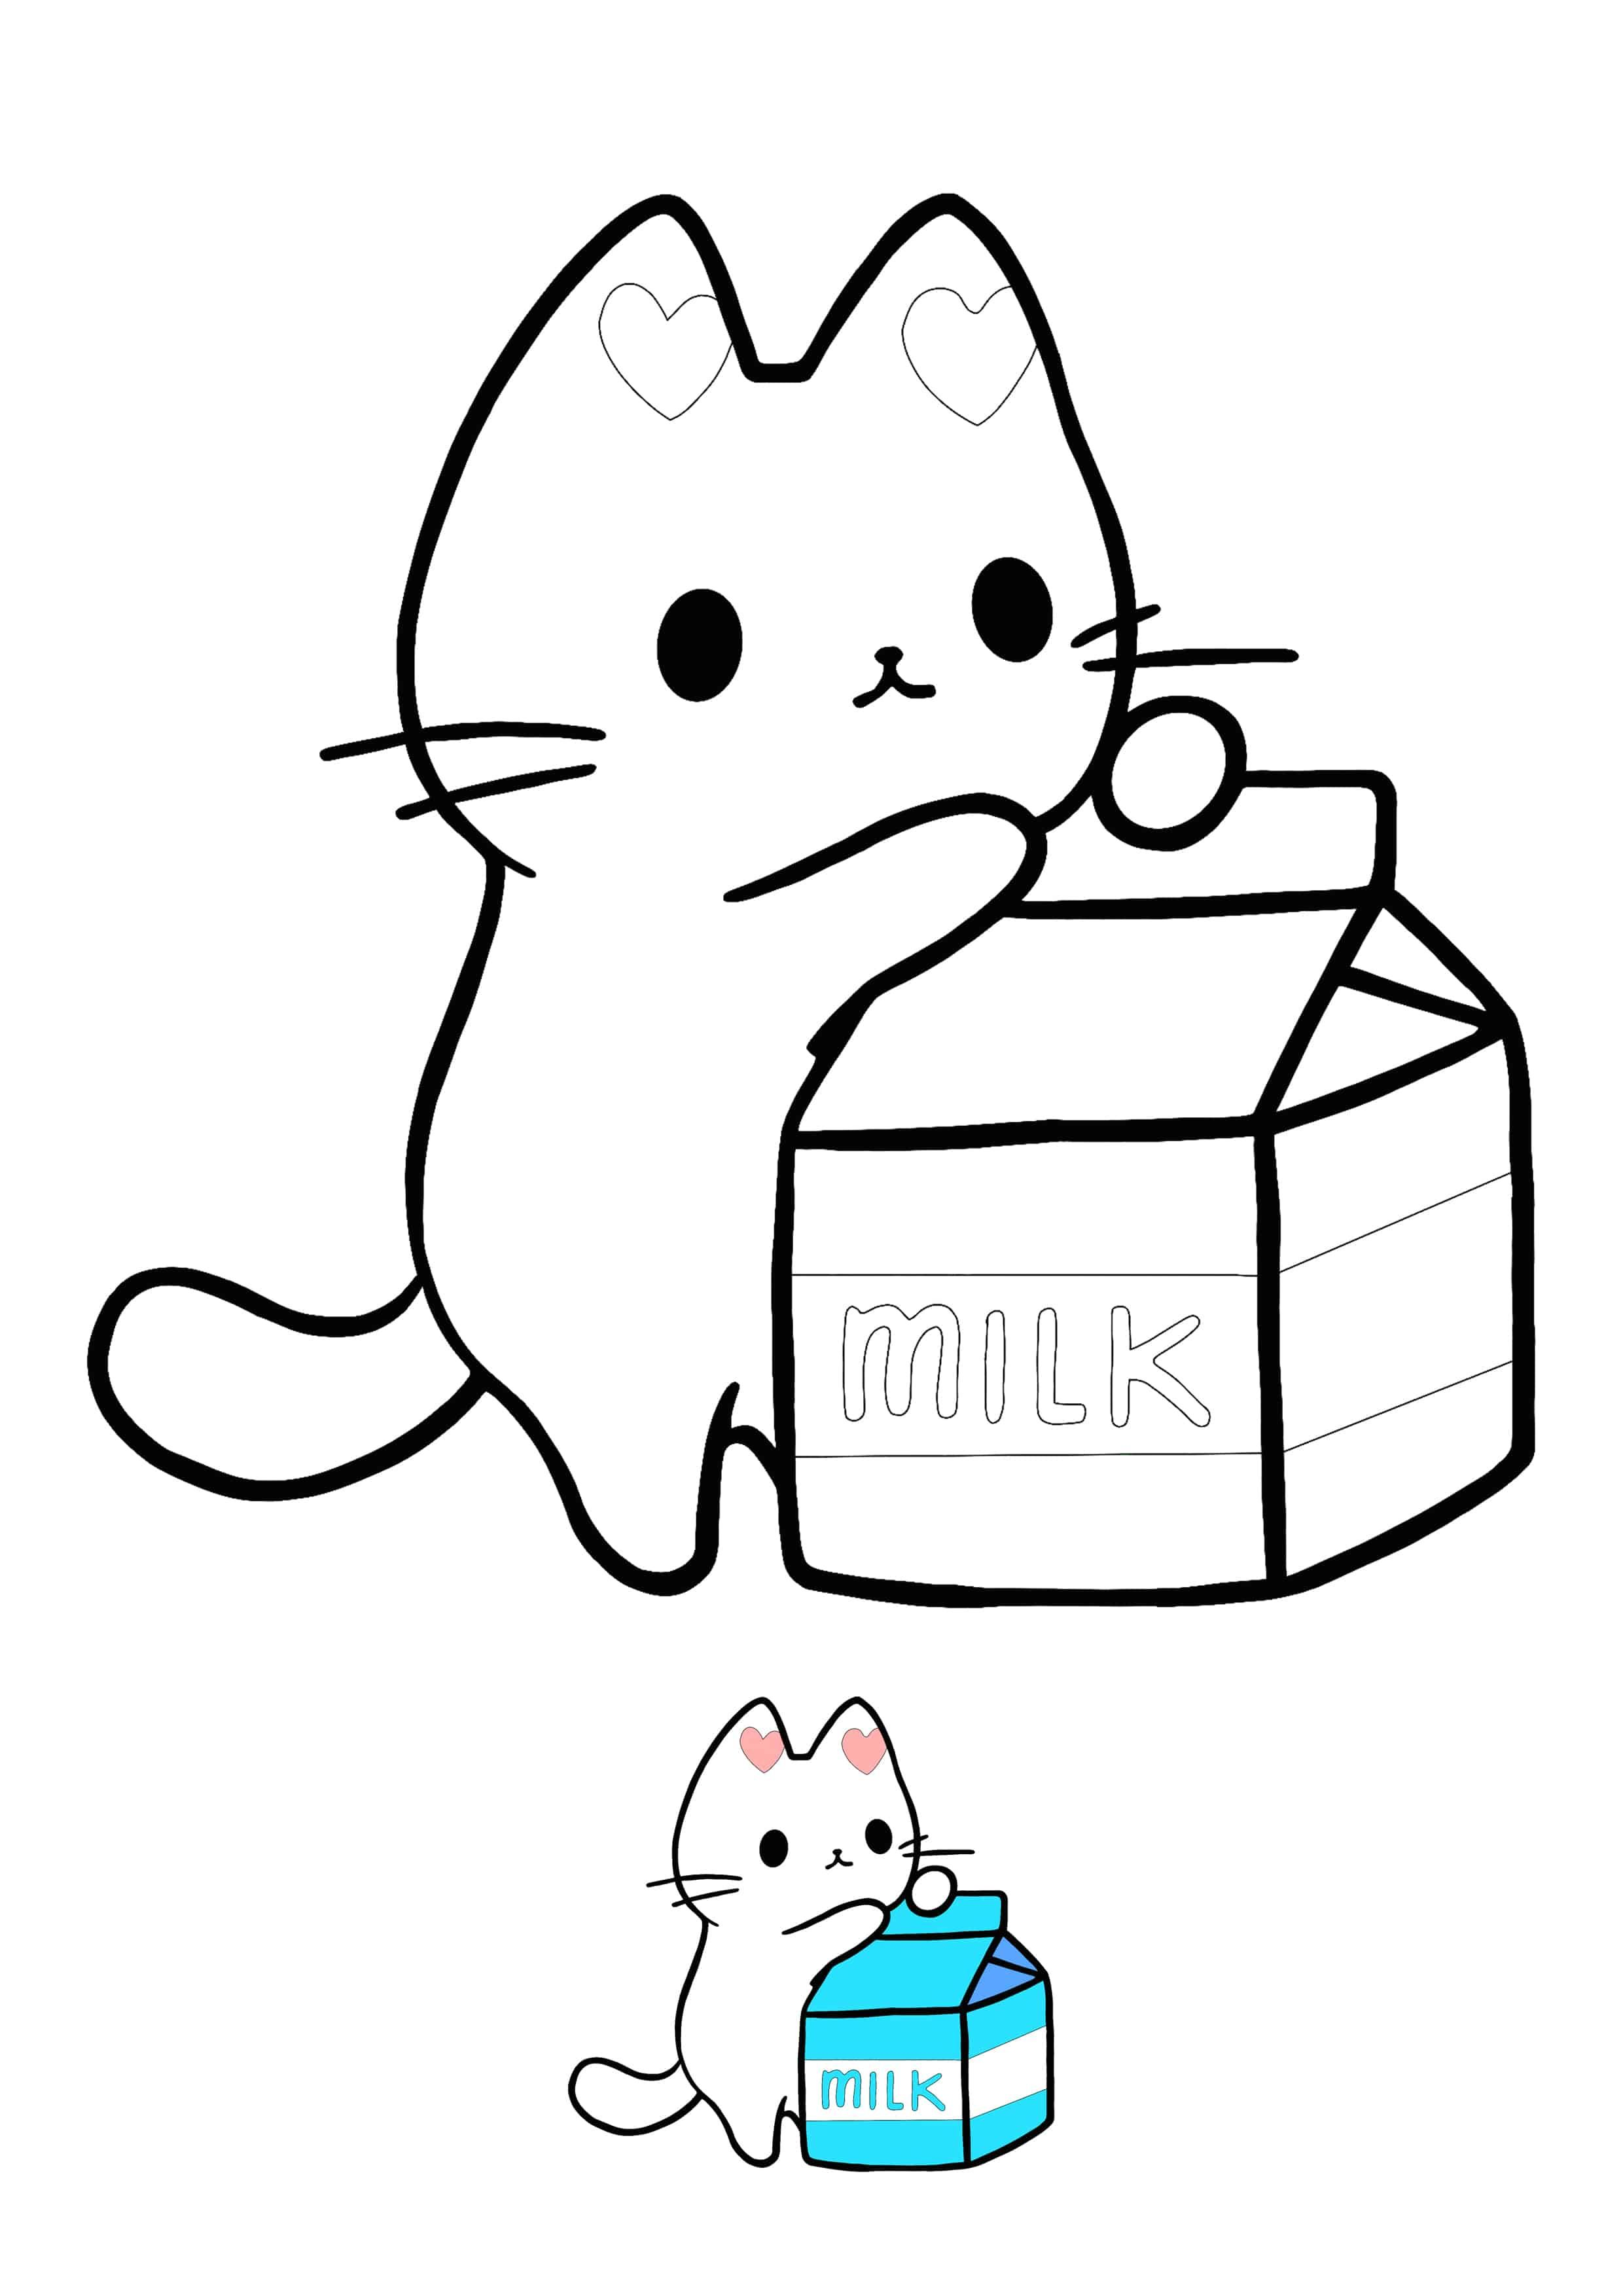 Kawaii Kitten With Milk Packet Coloring Page Hello Kitty Colouring Pages Giraffe Coloring Pages Kids Printable Coloring Pages